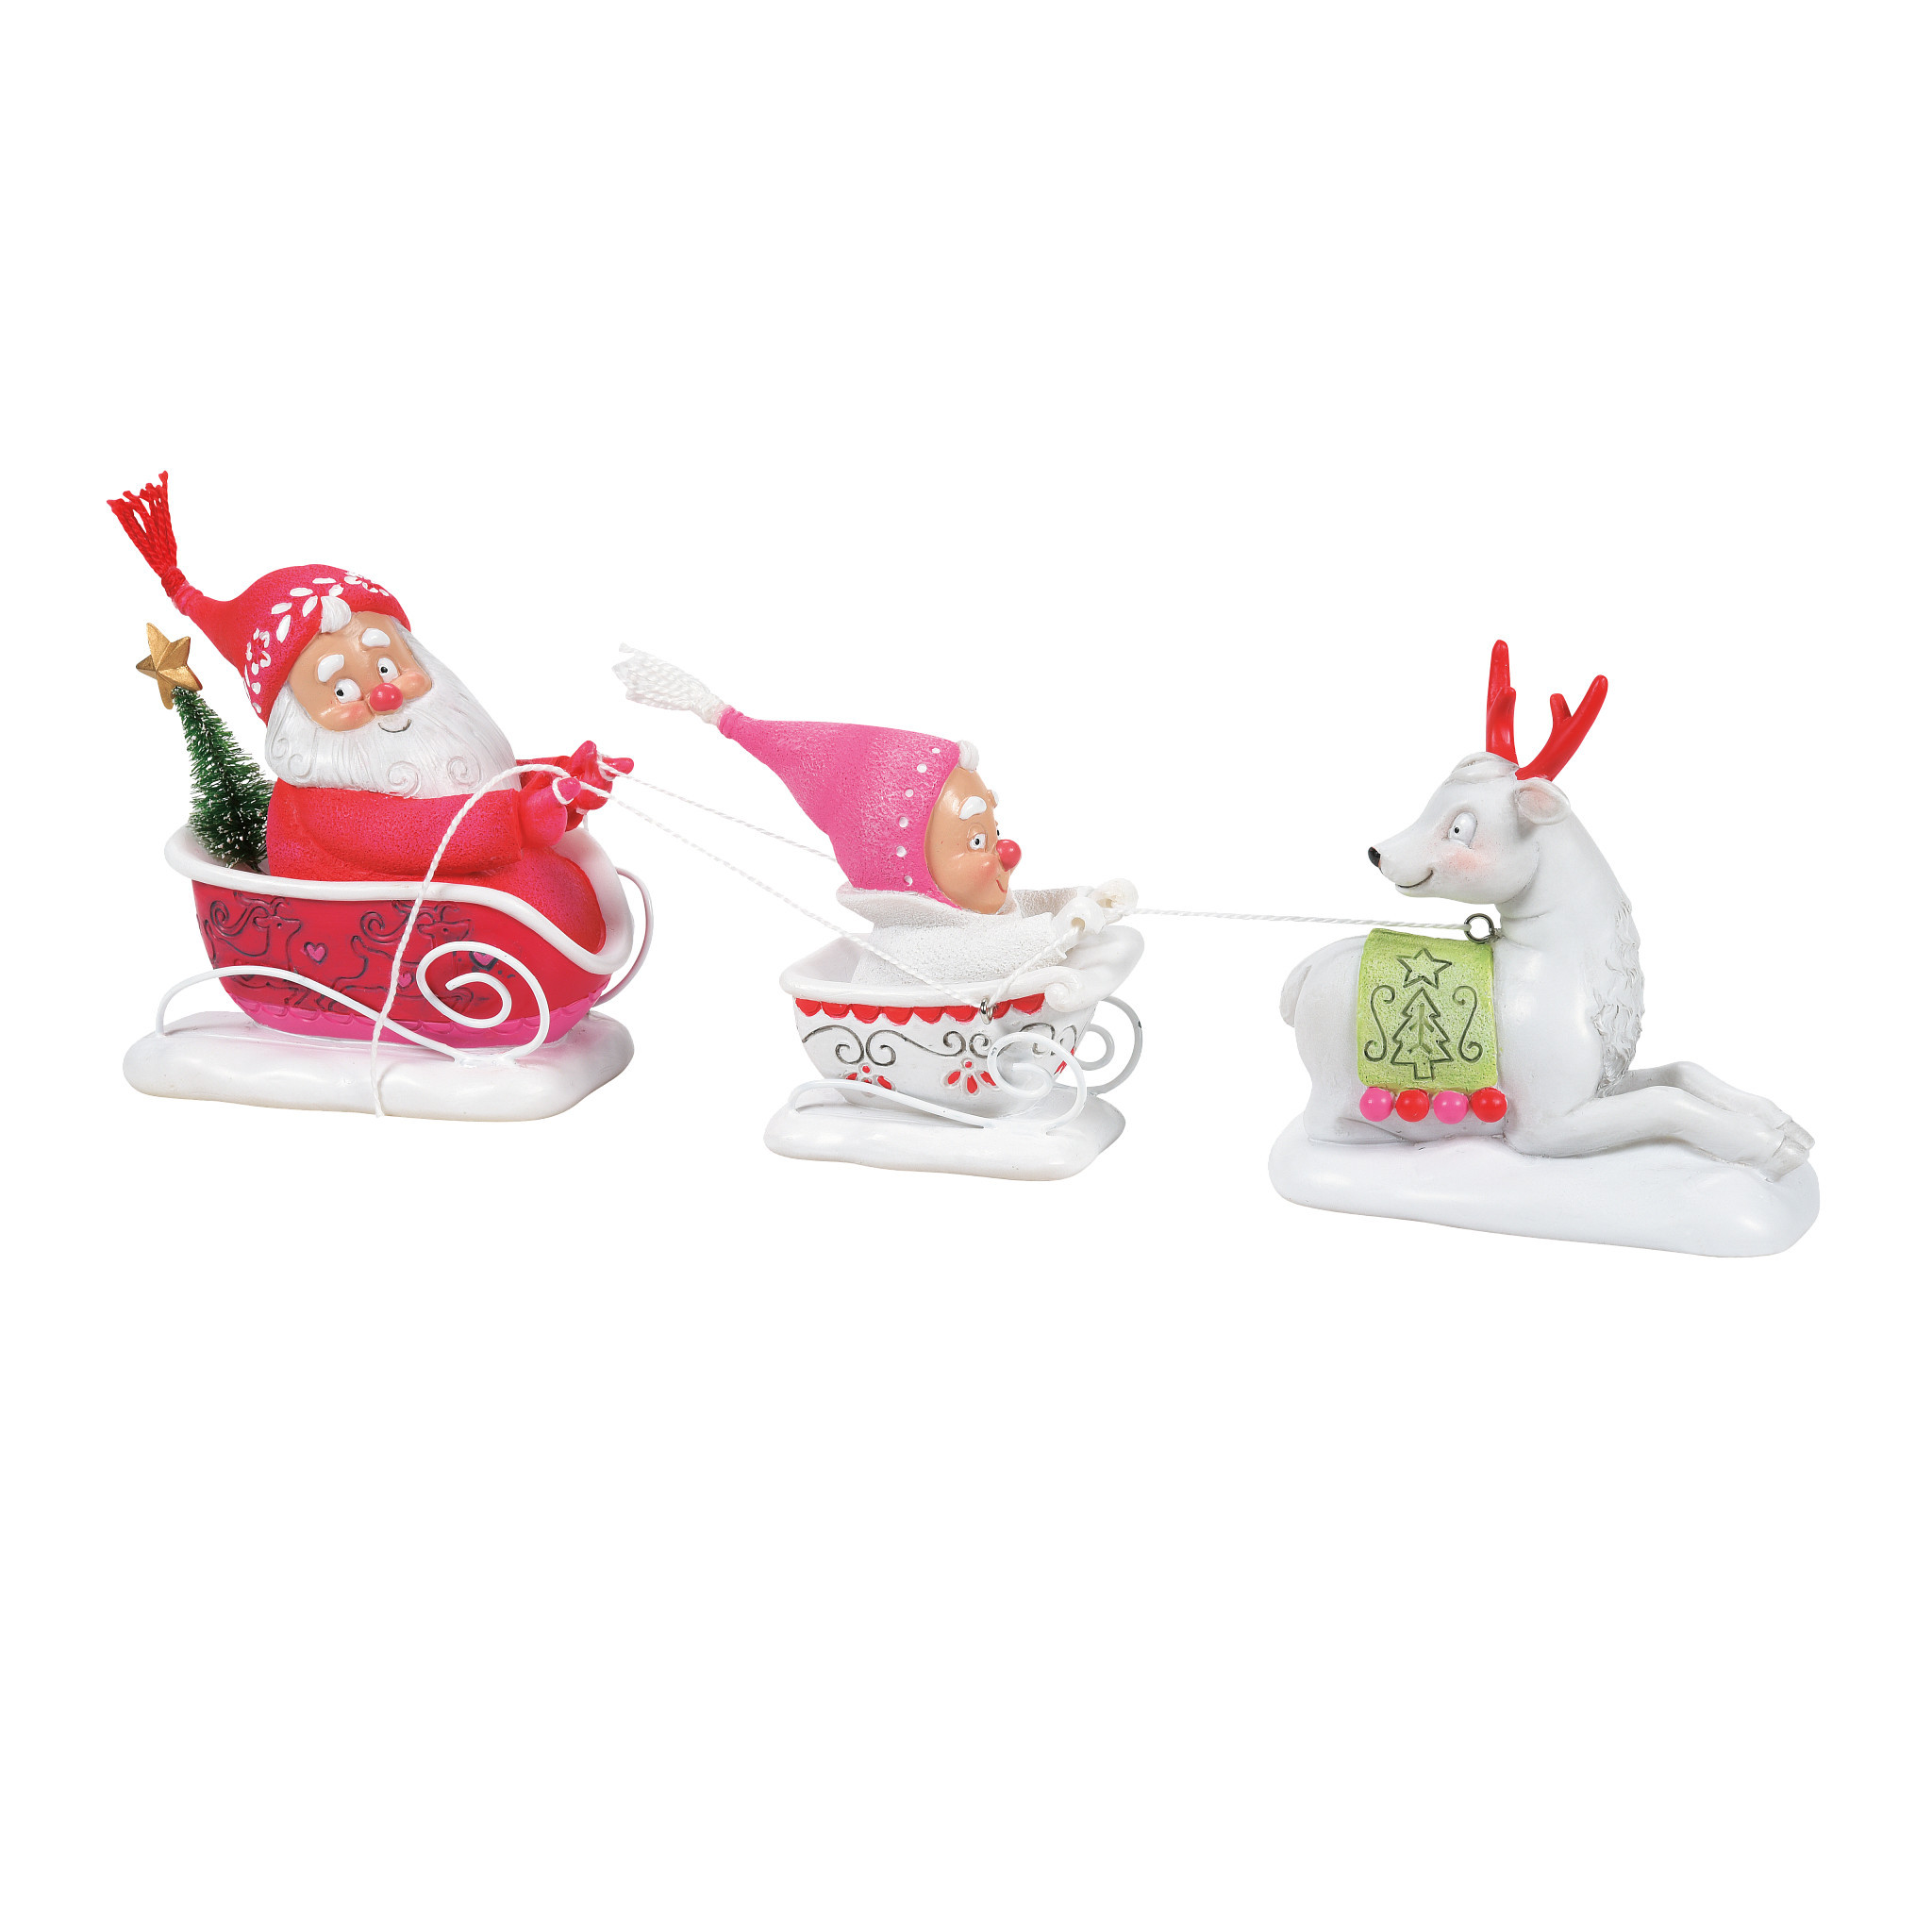 Department 56 ® - Figurines 'Snow Gnome Sleigh N' 2021